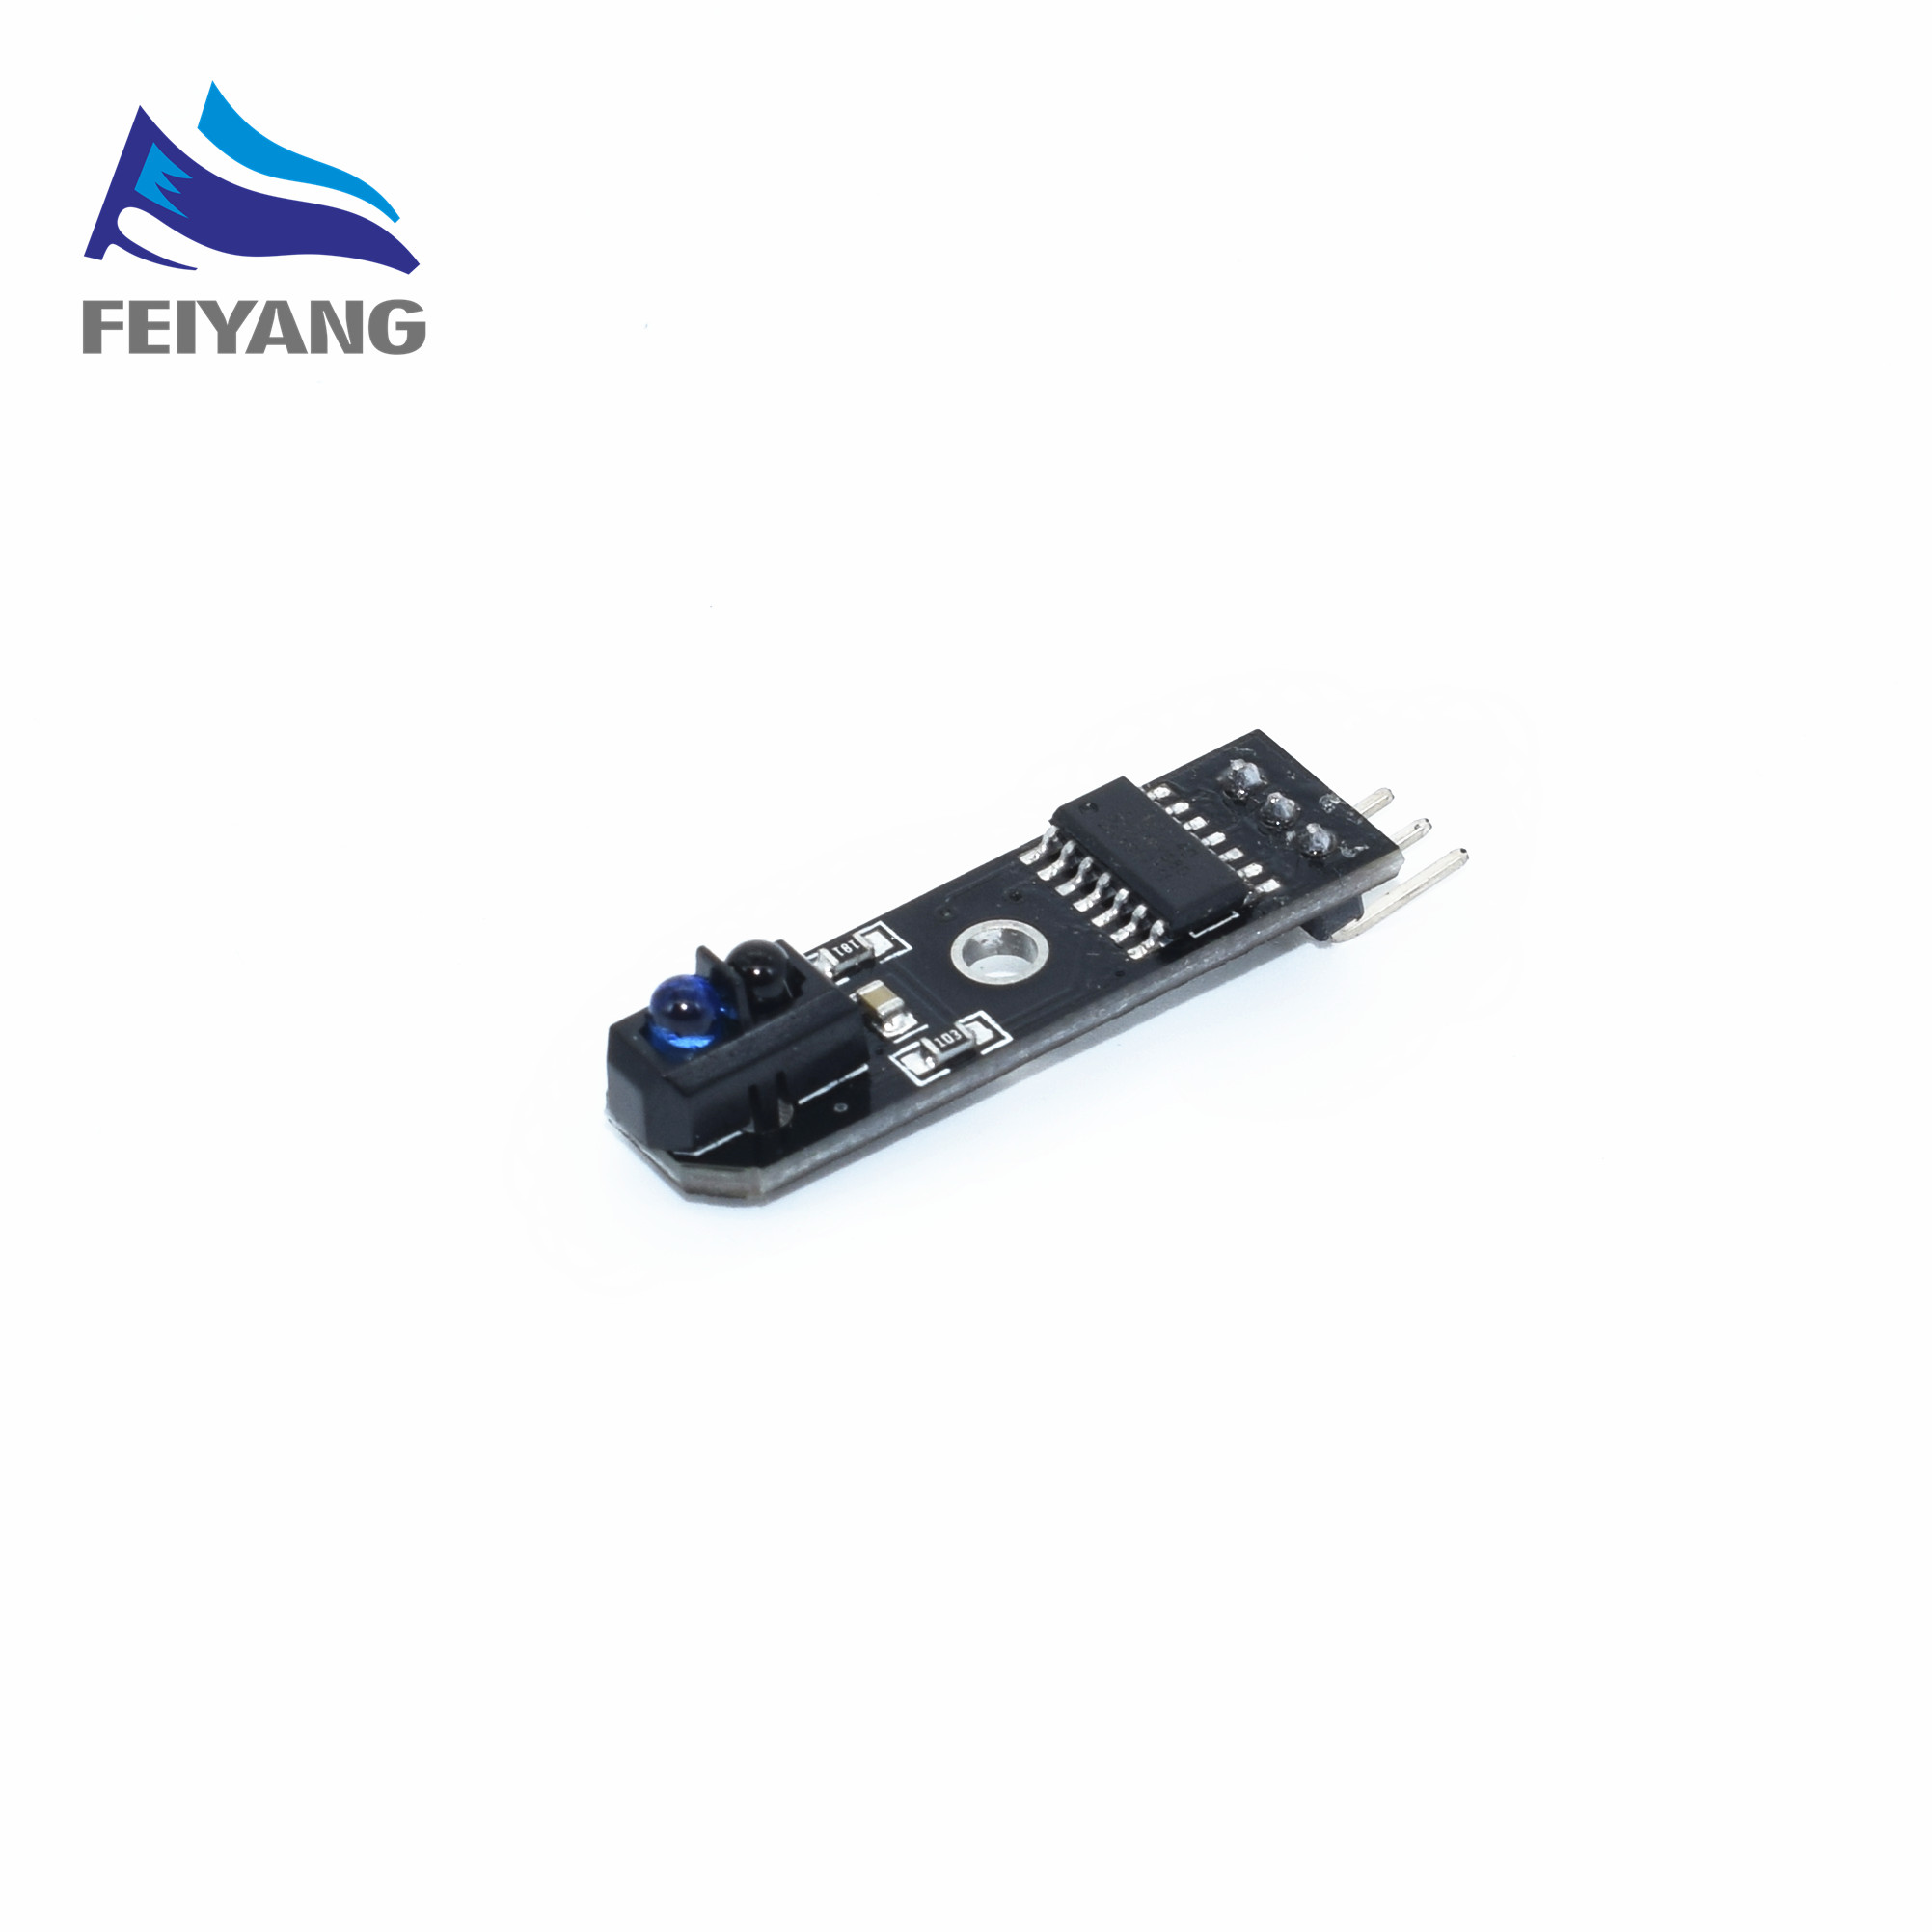 1PCS SAMIORE ROBOT 1 channel tracing module/ 1 way Intelligent Vehicle TCRT5000 tracker sensor probe infrared 1